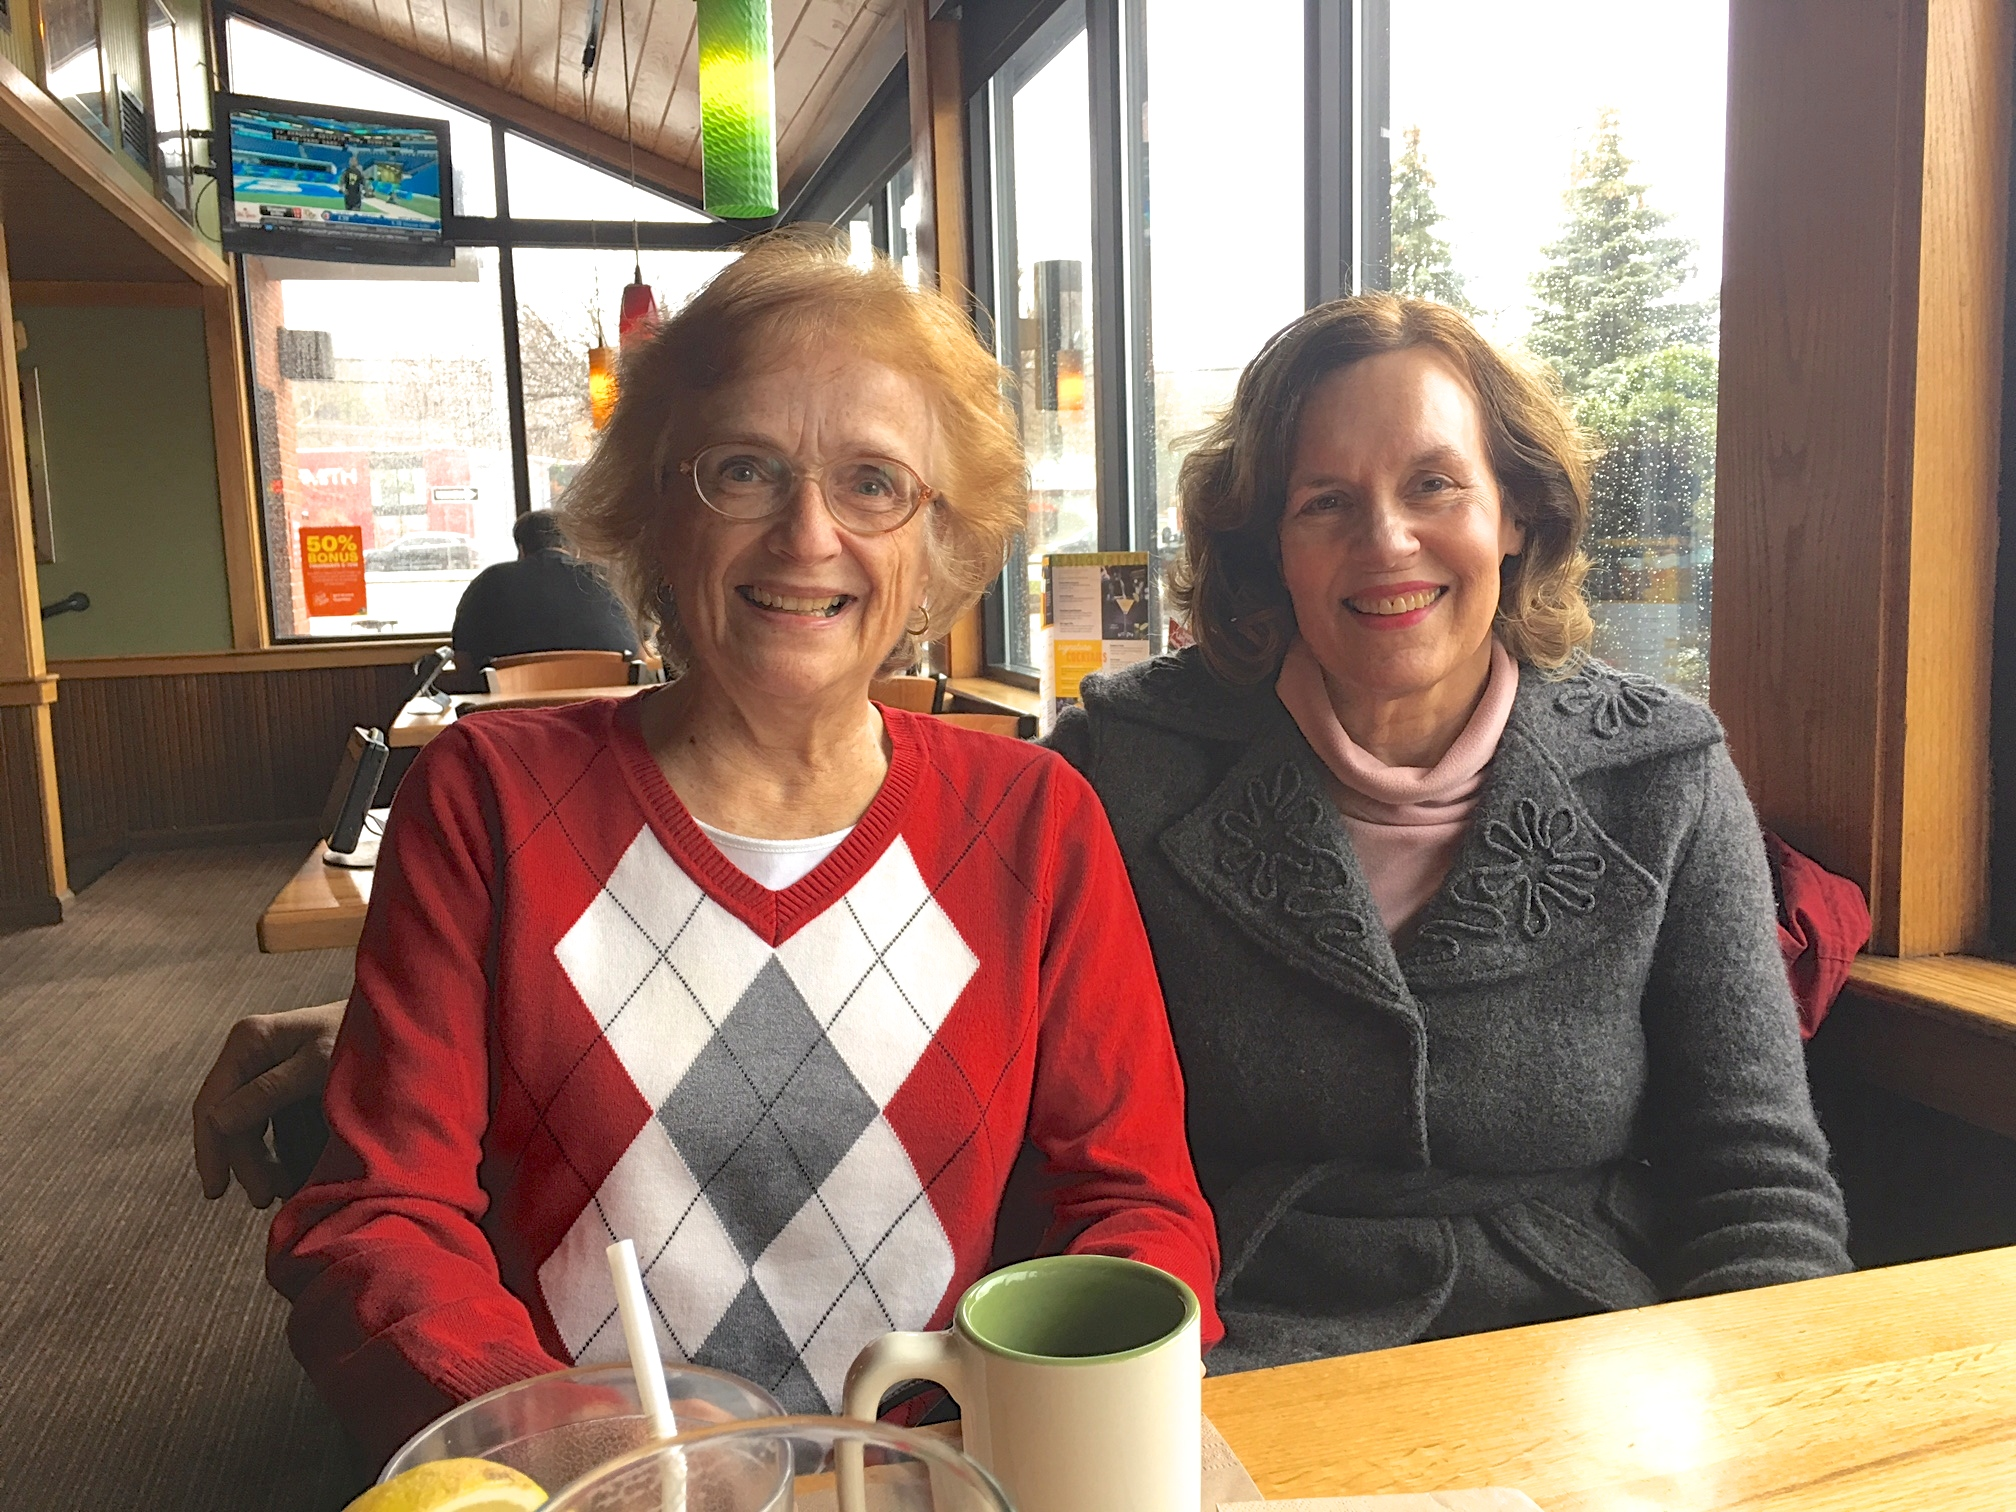 Jeanne Bednarski Sheridan & Lorraine Gudas, 4-2-18, at lunch in Syracuse, NY